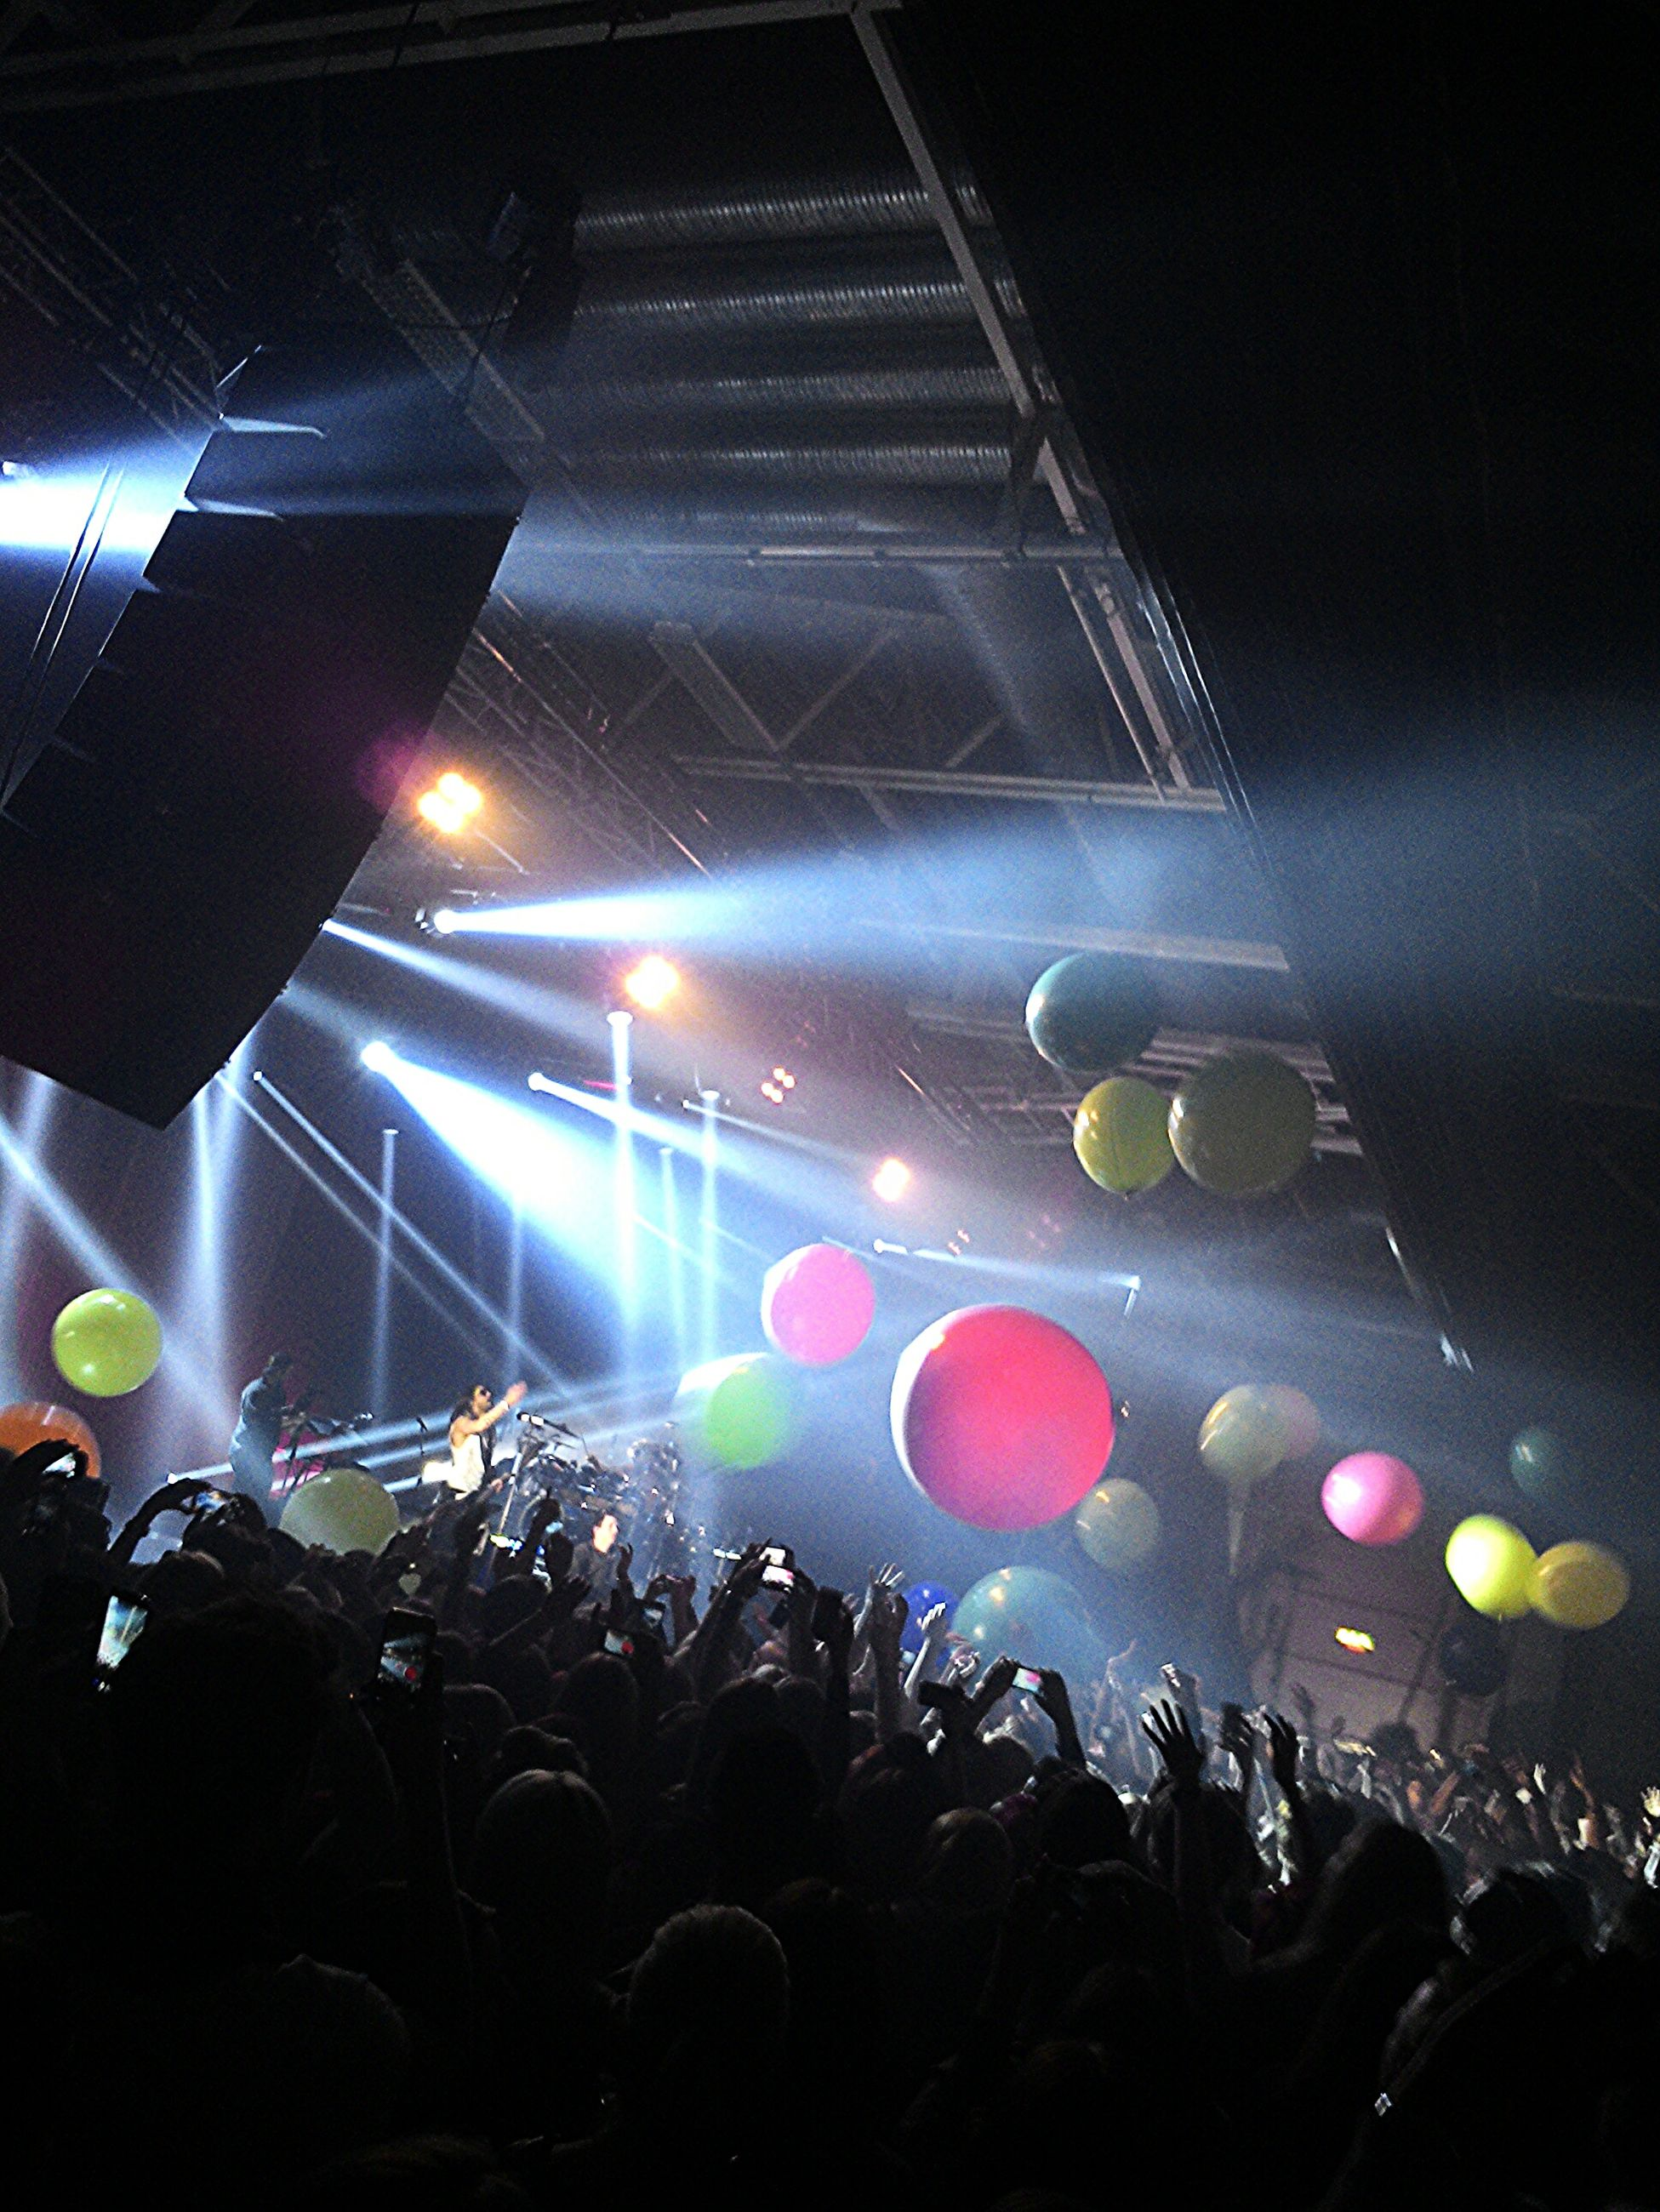 illuminated, arts culture and entertainment, large group of people, crowd, nightlife, music, event, person, night, performance, enjoyment, leisure activity, celebration, youth culture, fun, men, lifestyles, stage - performance space, concert